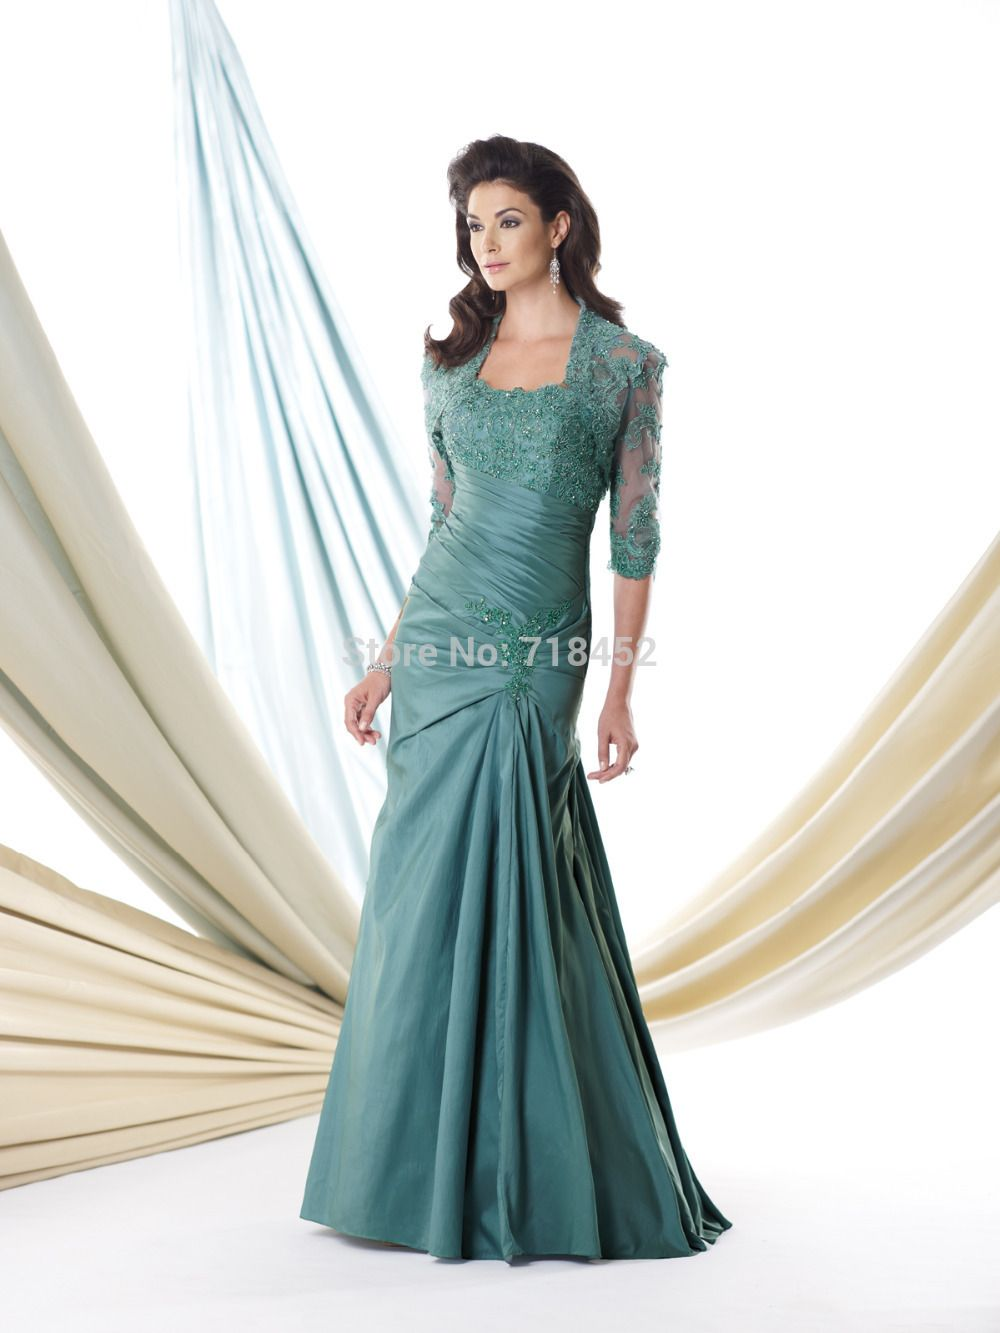 Wedding dresses for mother of the bride  Click to Buy ucuc Fashion Design Turquoise Mother of Bride Dress with